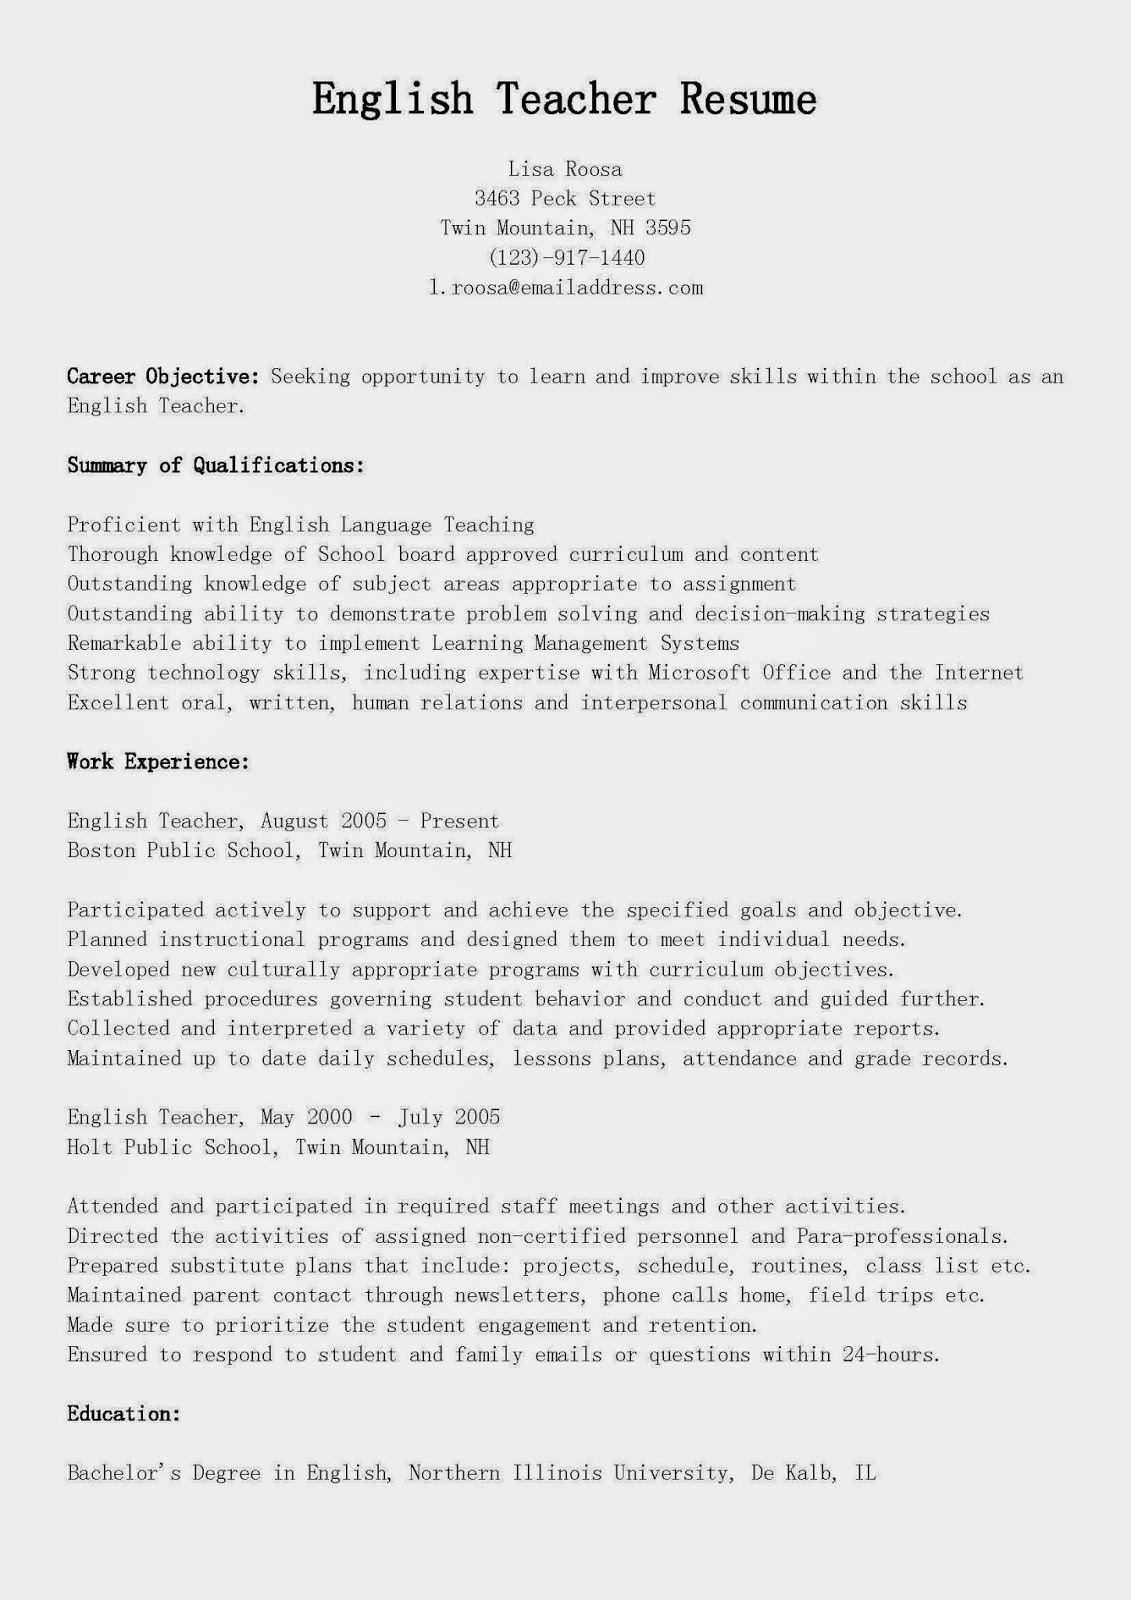 english resume objective example resume sample english resume objective example resume objective examples simple resume resume samples english teacher resume sample